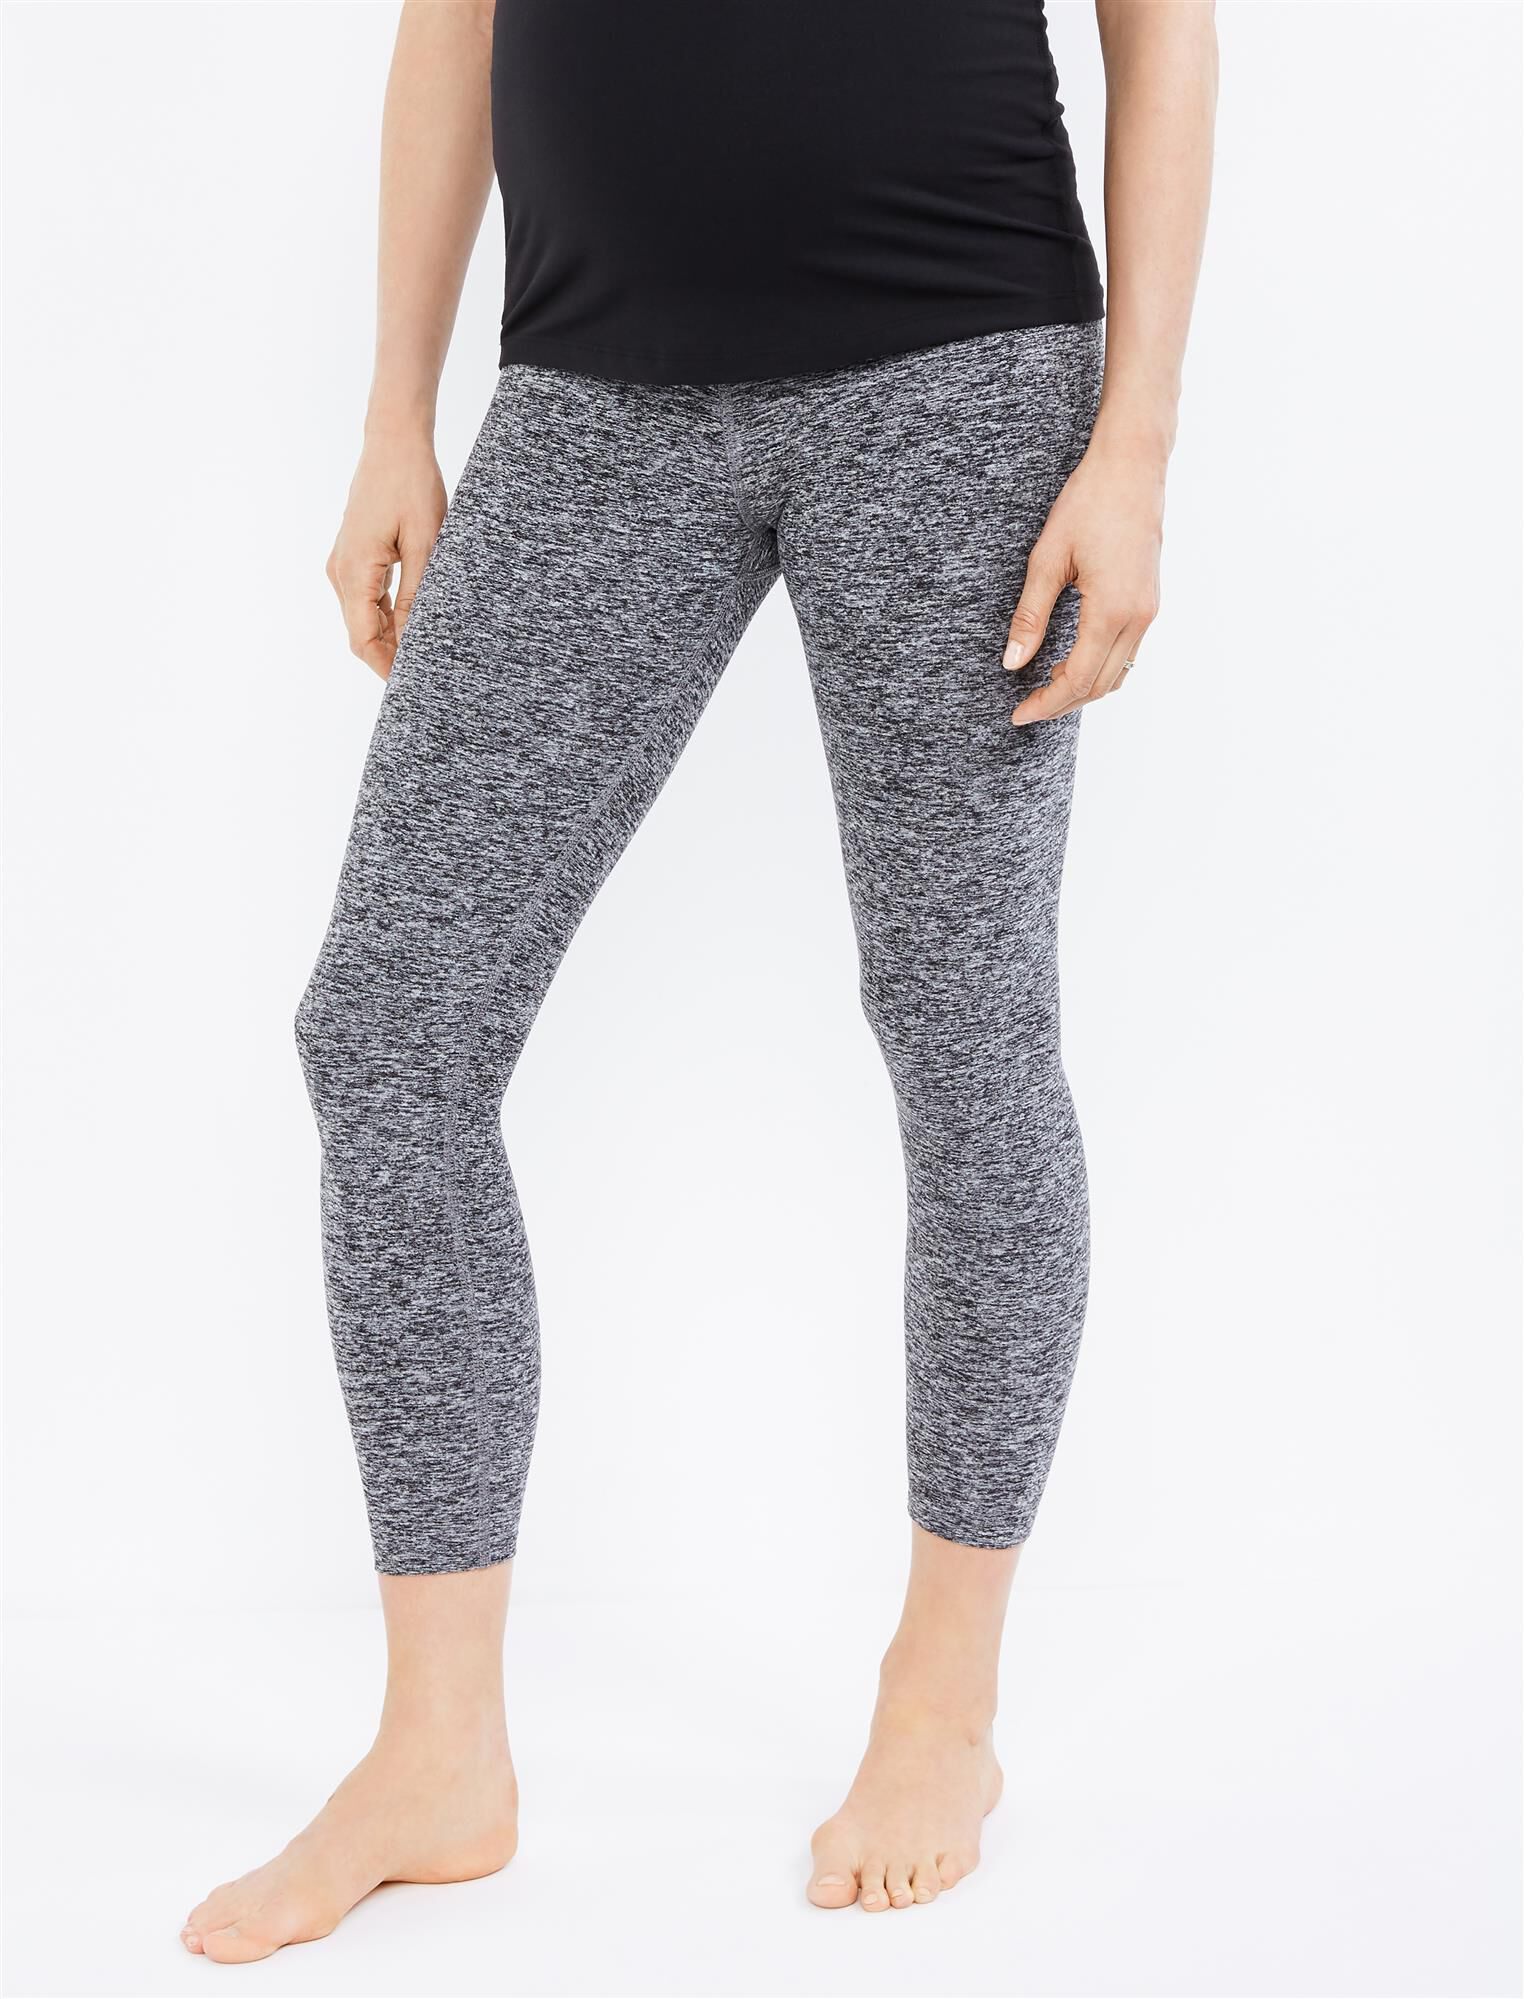 Beyond The Bump What's Kicking Foldover Maternity Legging